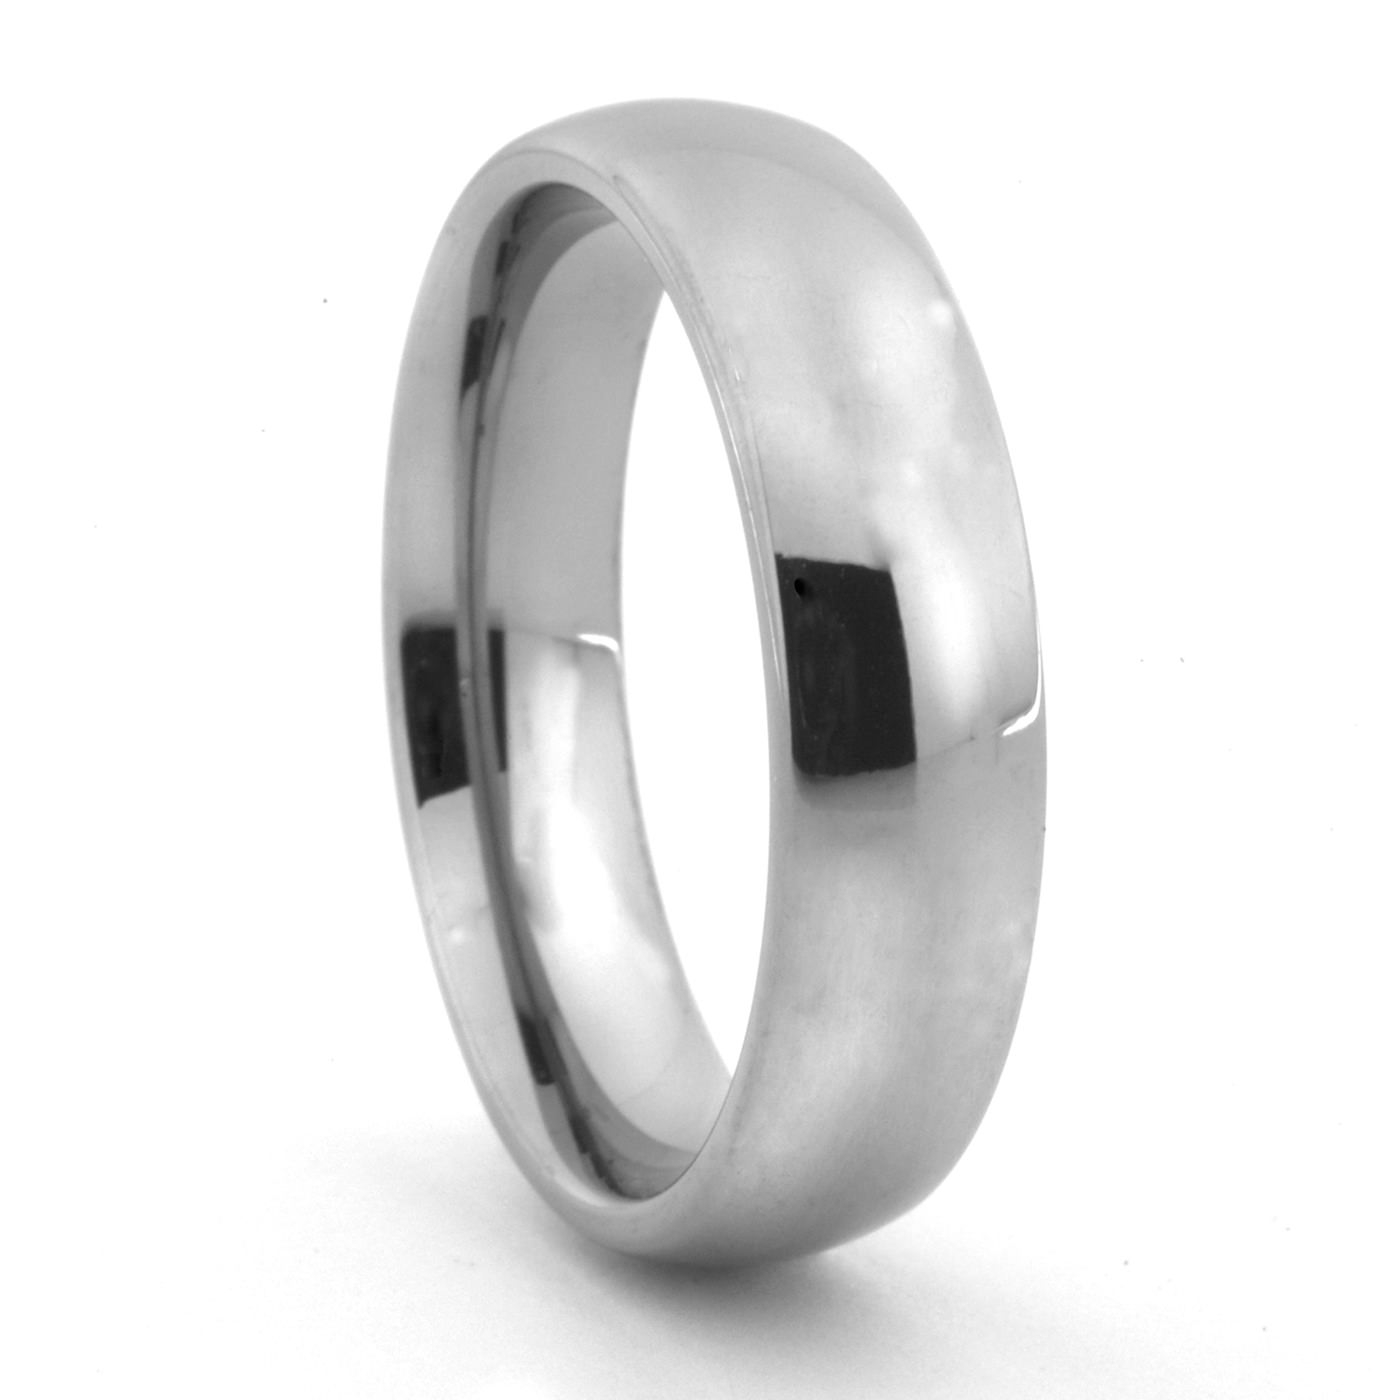 Classic Titanium Wedding Band – 6Mm Men's Titanium Band Regarding Titanium Wedding Bands (View 2 of 15)